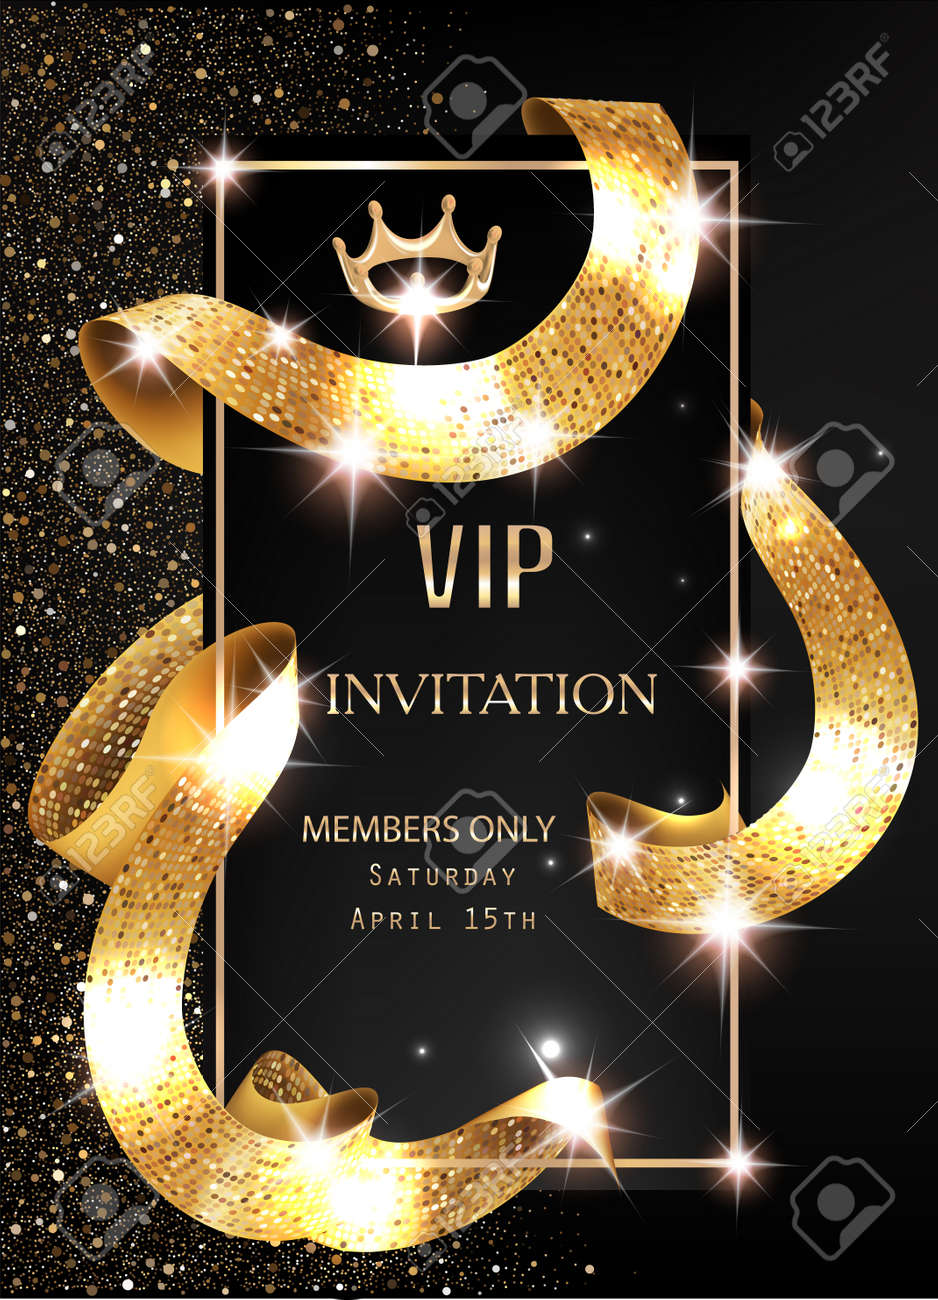 Vip invitation card with gold shiny sparkling curly ribbon vector vector vip invitation card with gold shiny sparkling curly ribbon vector illustration stopboris Image collections